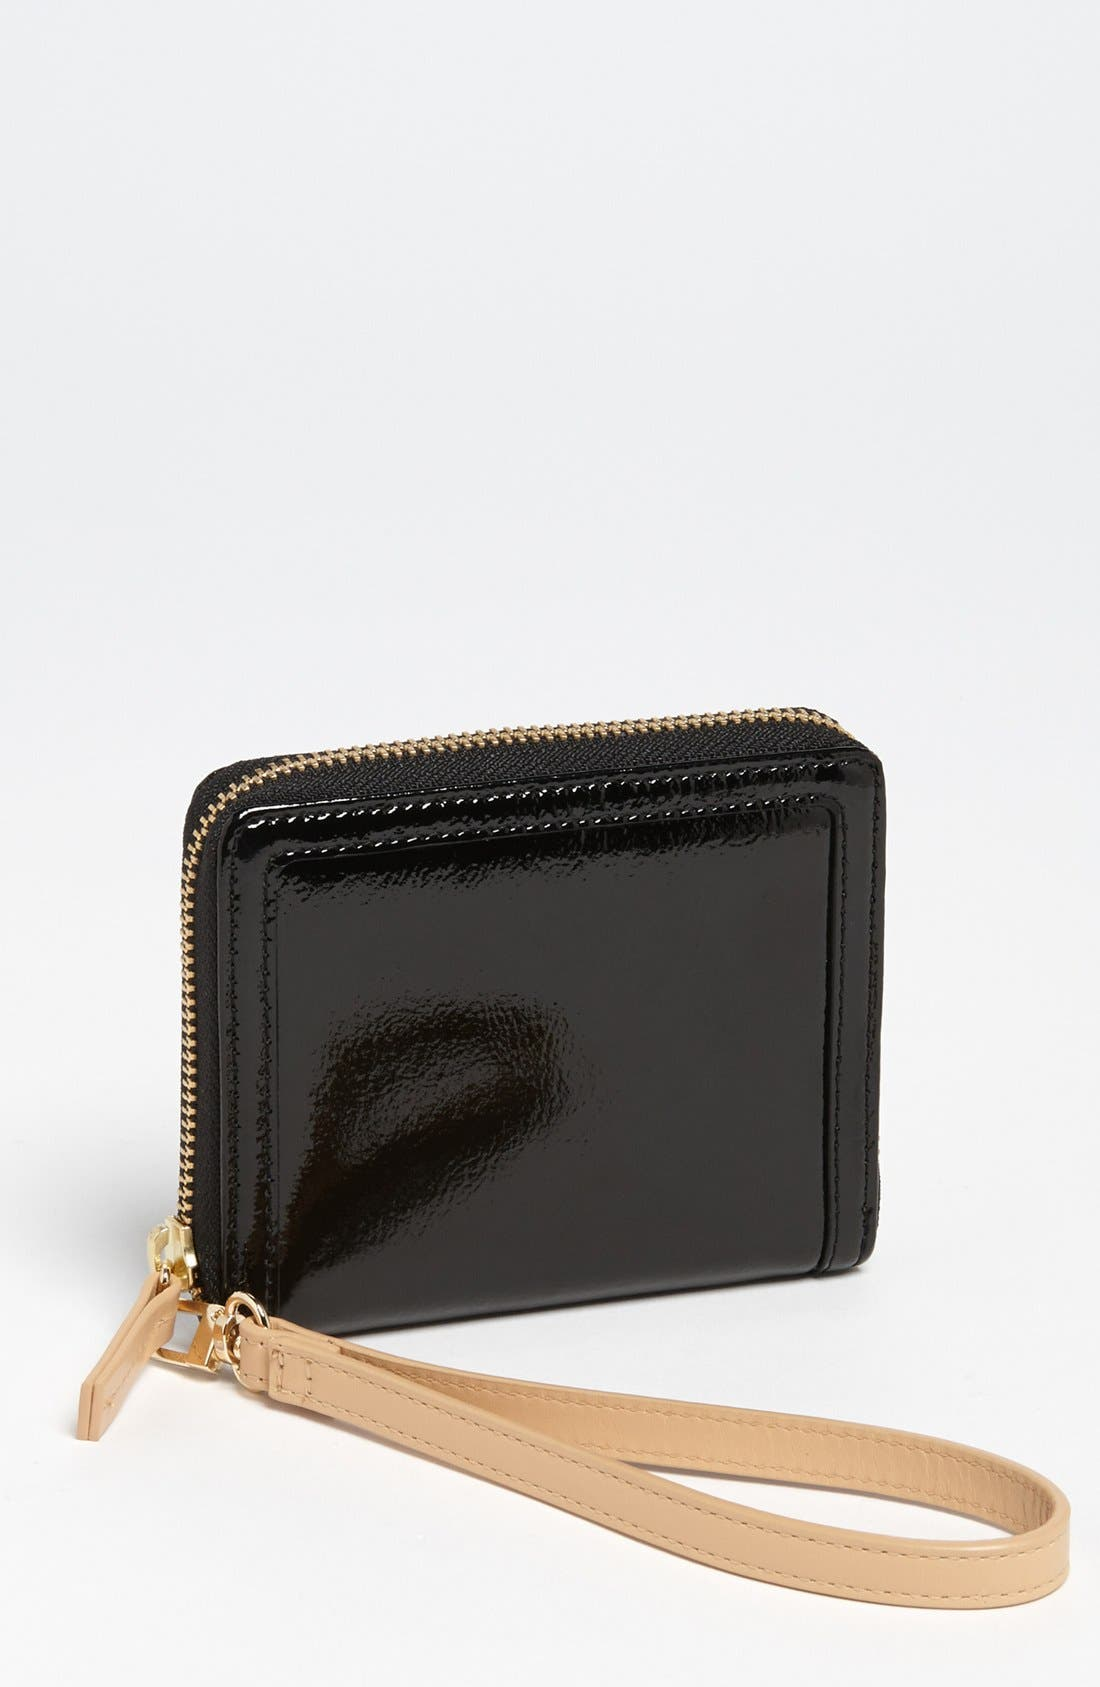 Alternate Image 1 Selected - Halogen 'Small' Leather Wristlet